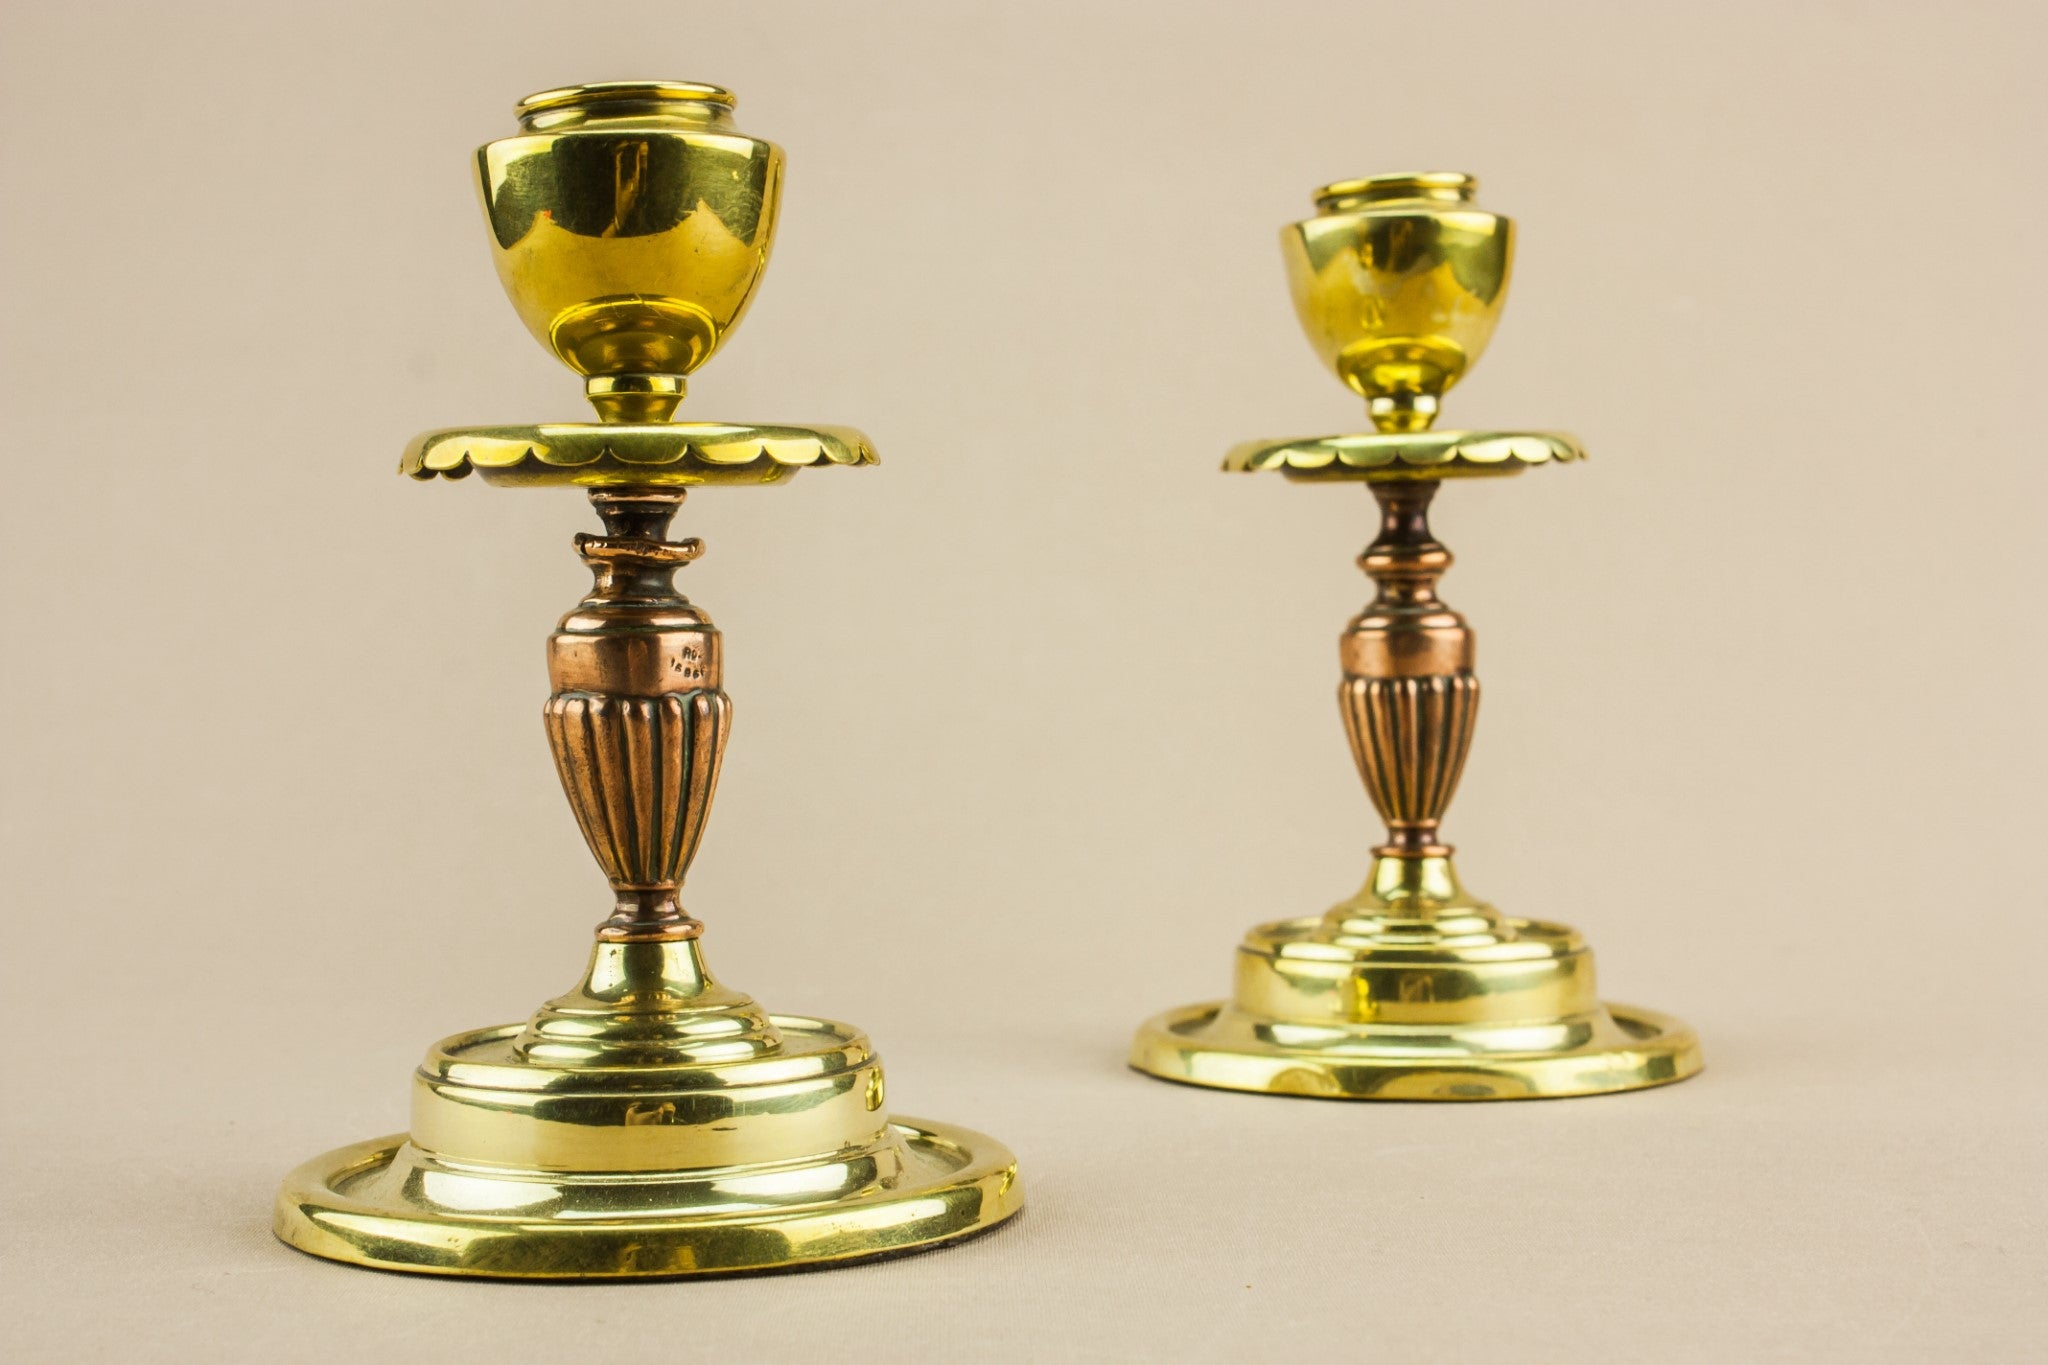 2 small brass candlesticks